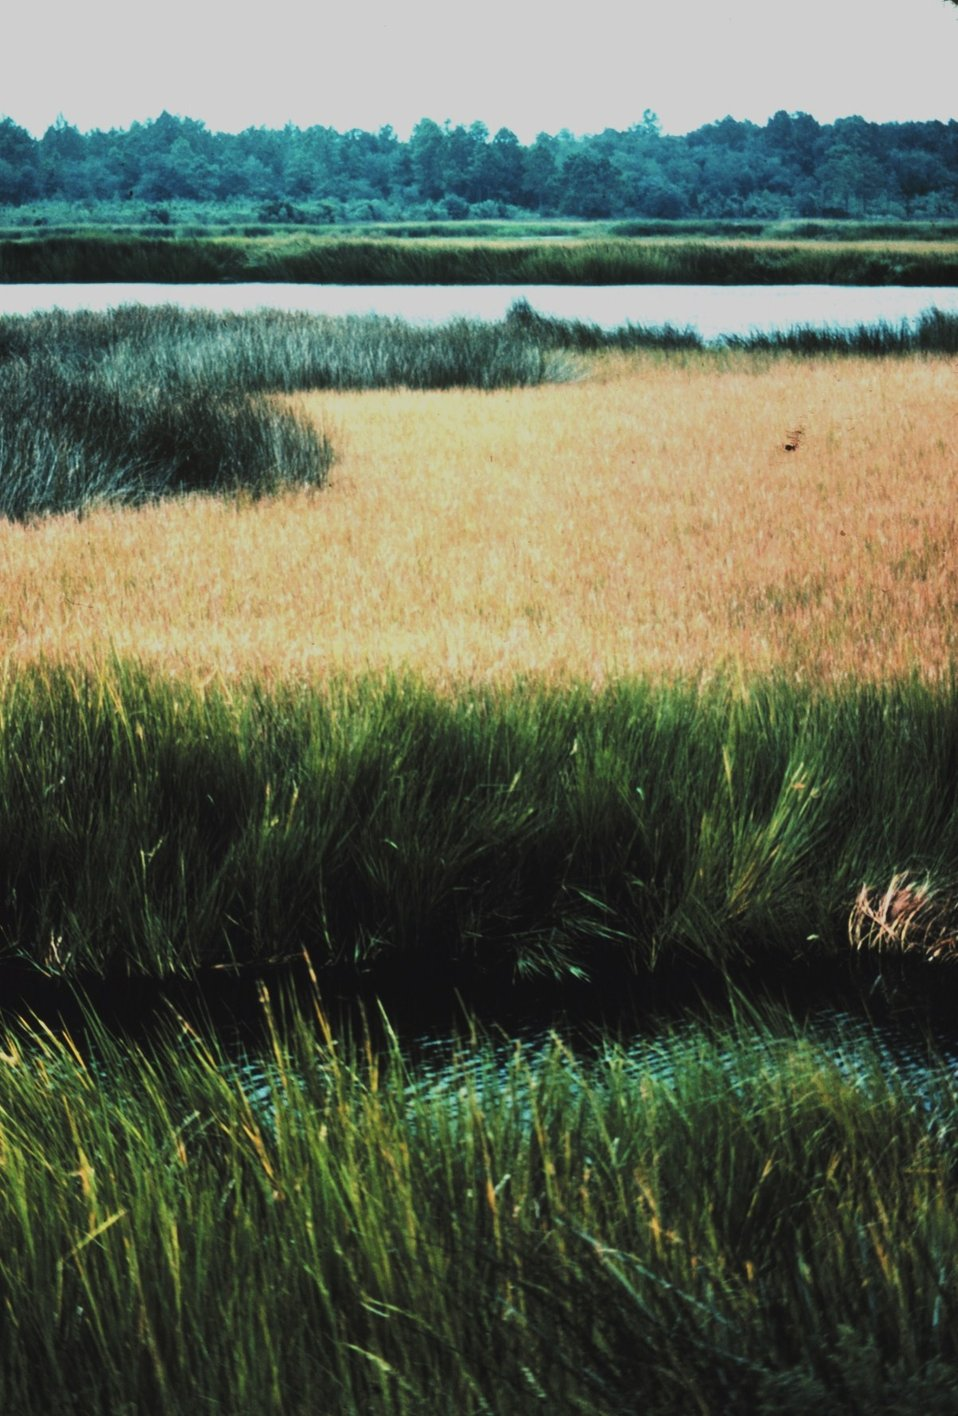 Black needle rush and Saltmarsh cordgrass (Spartina).  Maritime forest is seen in the background.